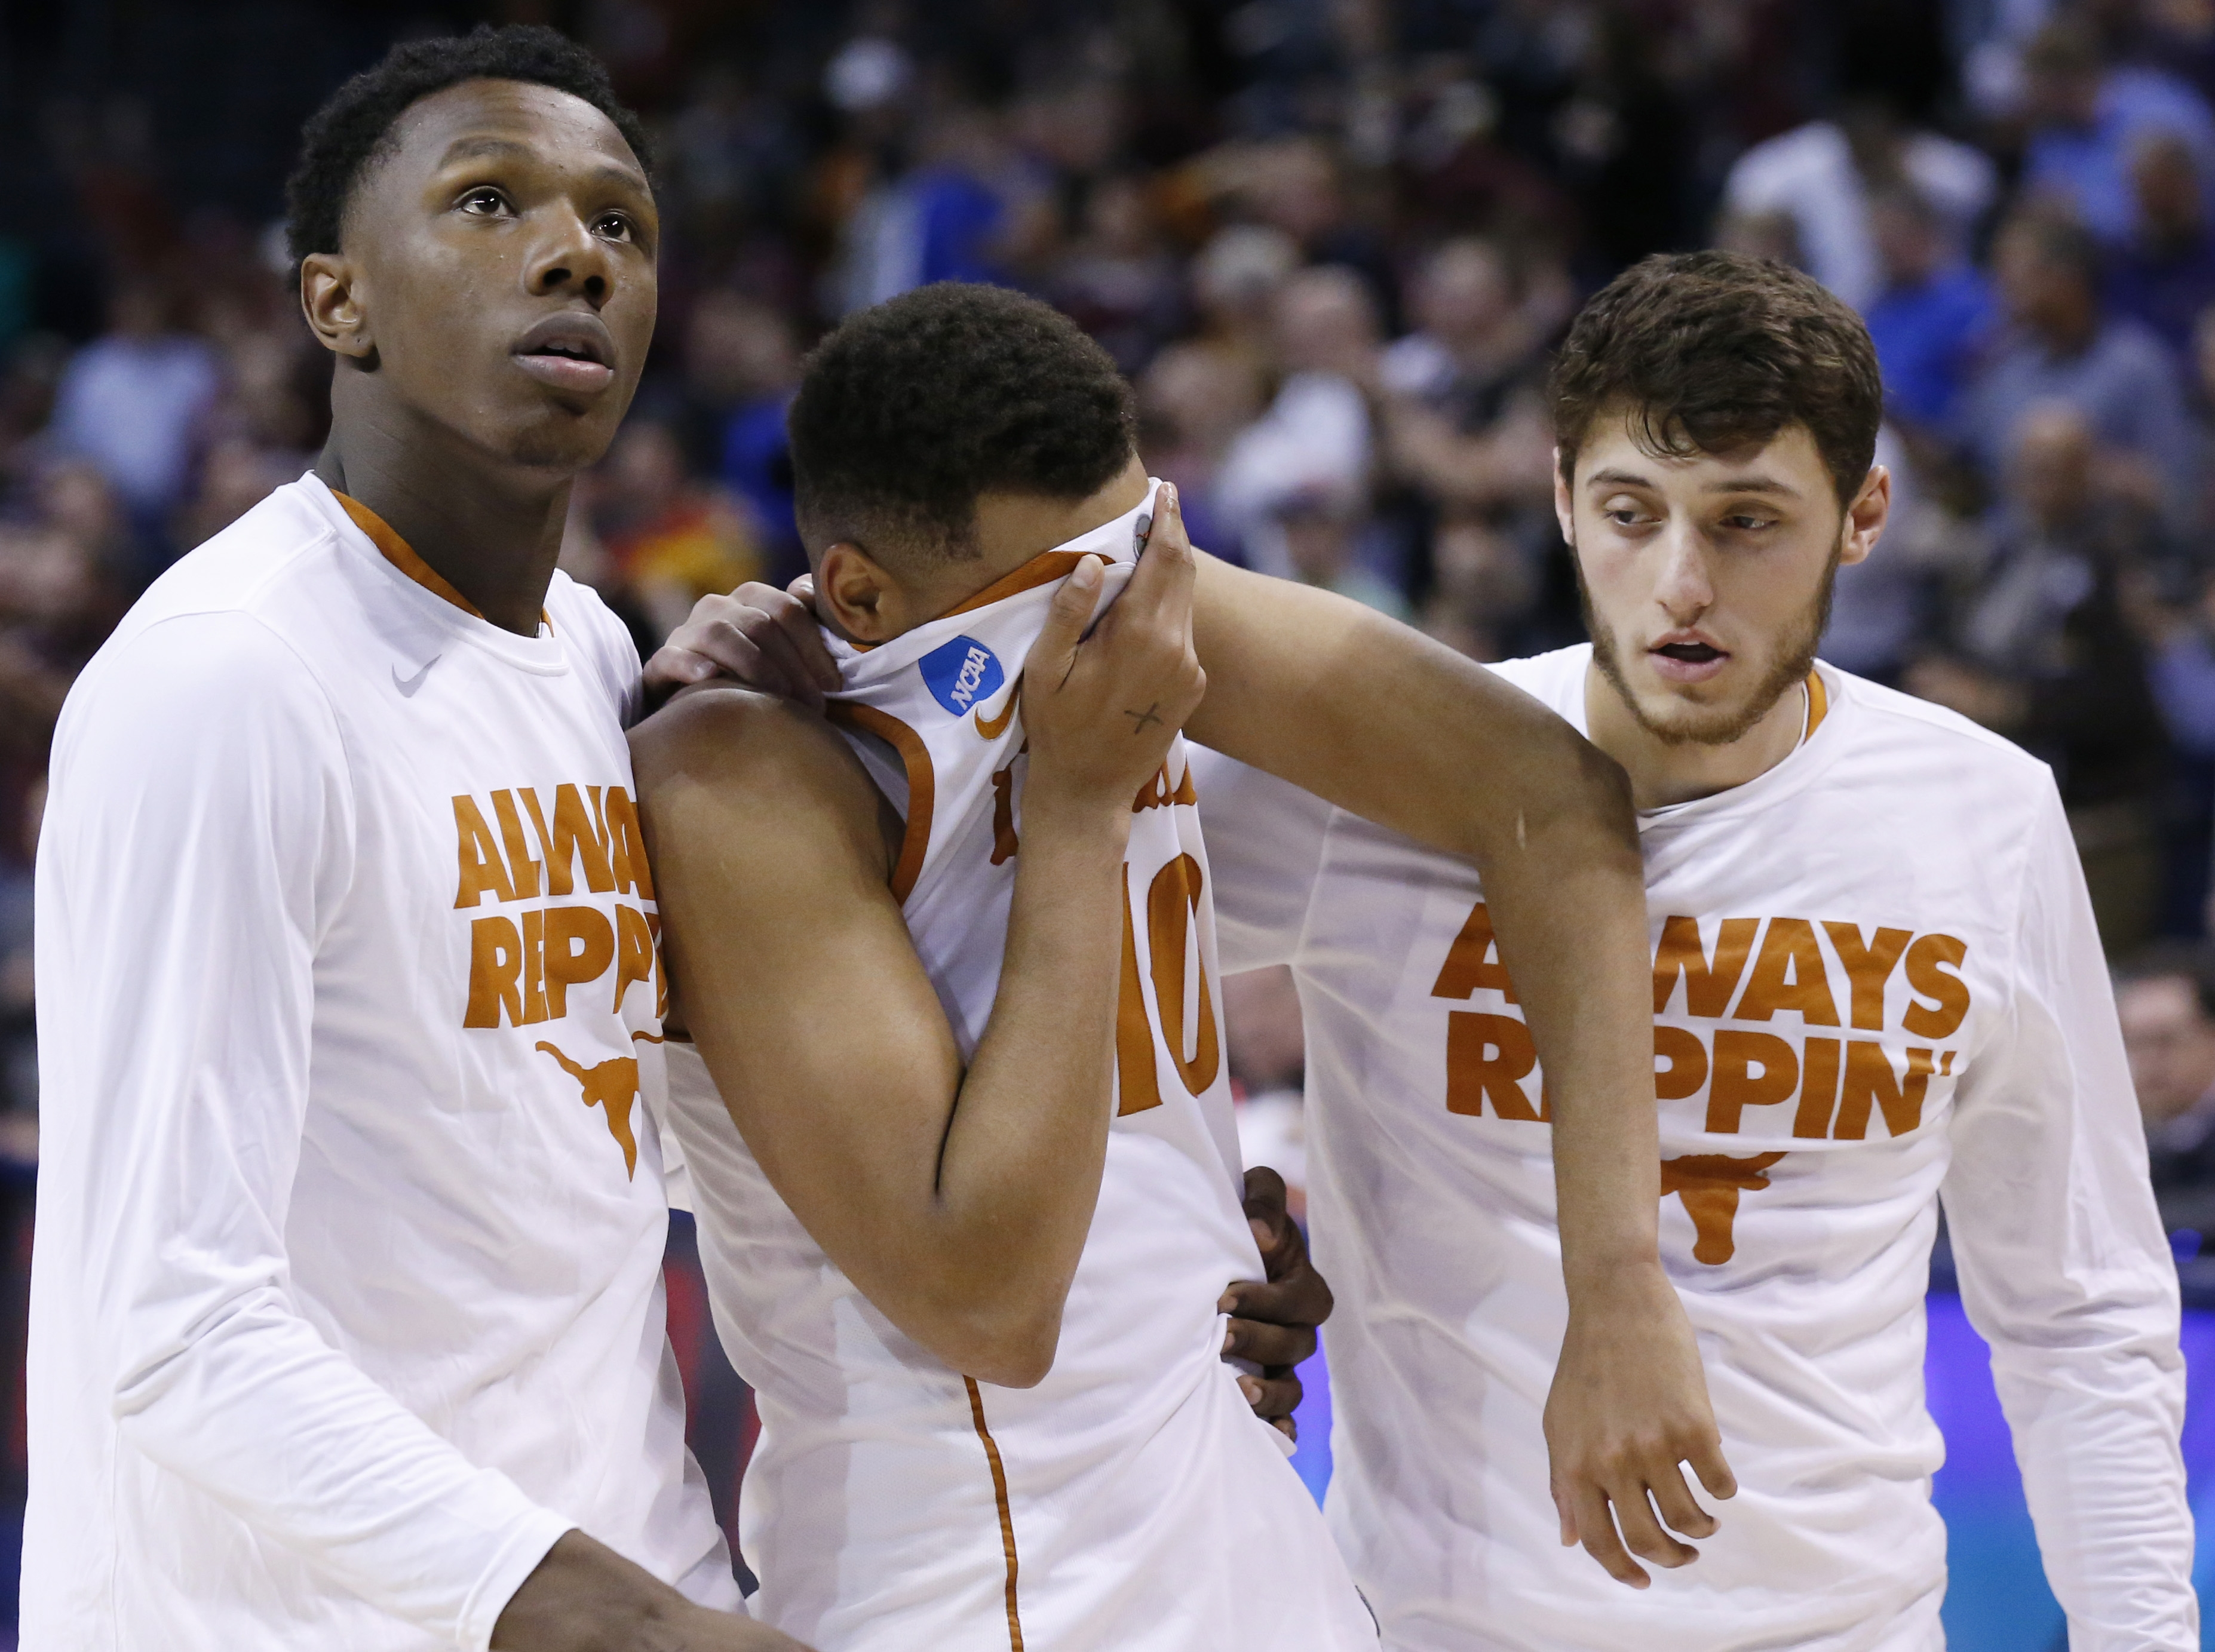 Texas guard Eric Davis Jr., center, is helped off the court by teammates Tevin Mack, left, and Joe Schwartz, right, after a first-round men's college basketball game against Northern Iowa in the NCAA Tournament, Friday, March 18, 2016, in Oklahoma City. N